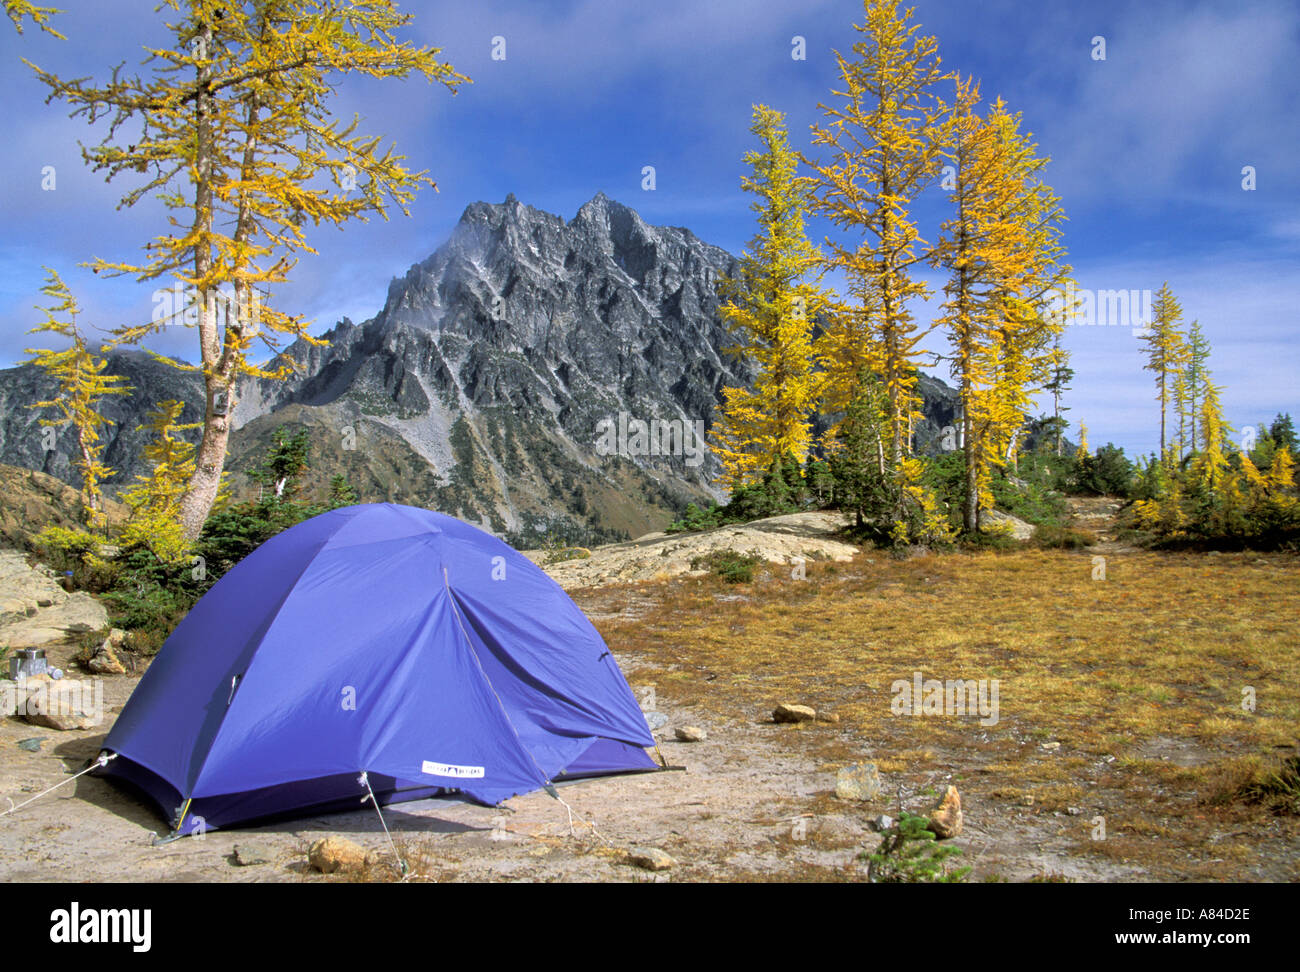 Tent in campsite Lake Ingalls Alpine Lakes Wilderness Wenatchee National Forest Cascade Mountains Washington - Stock Image